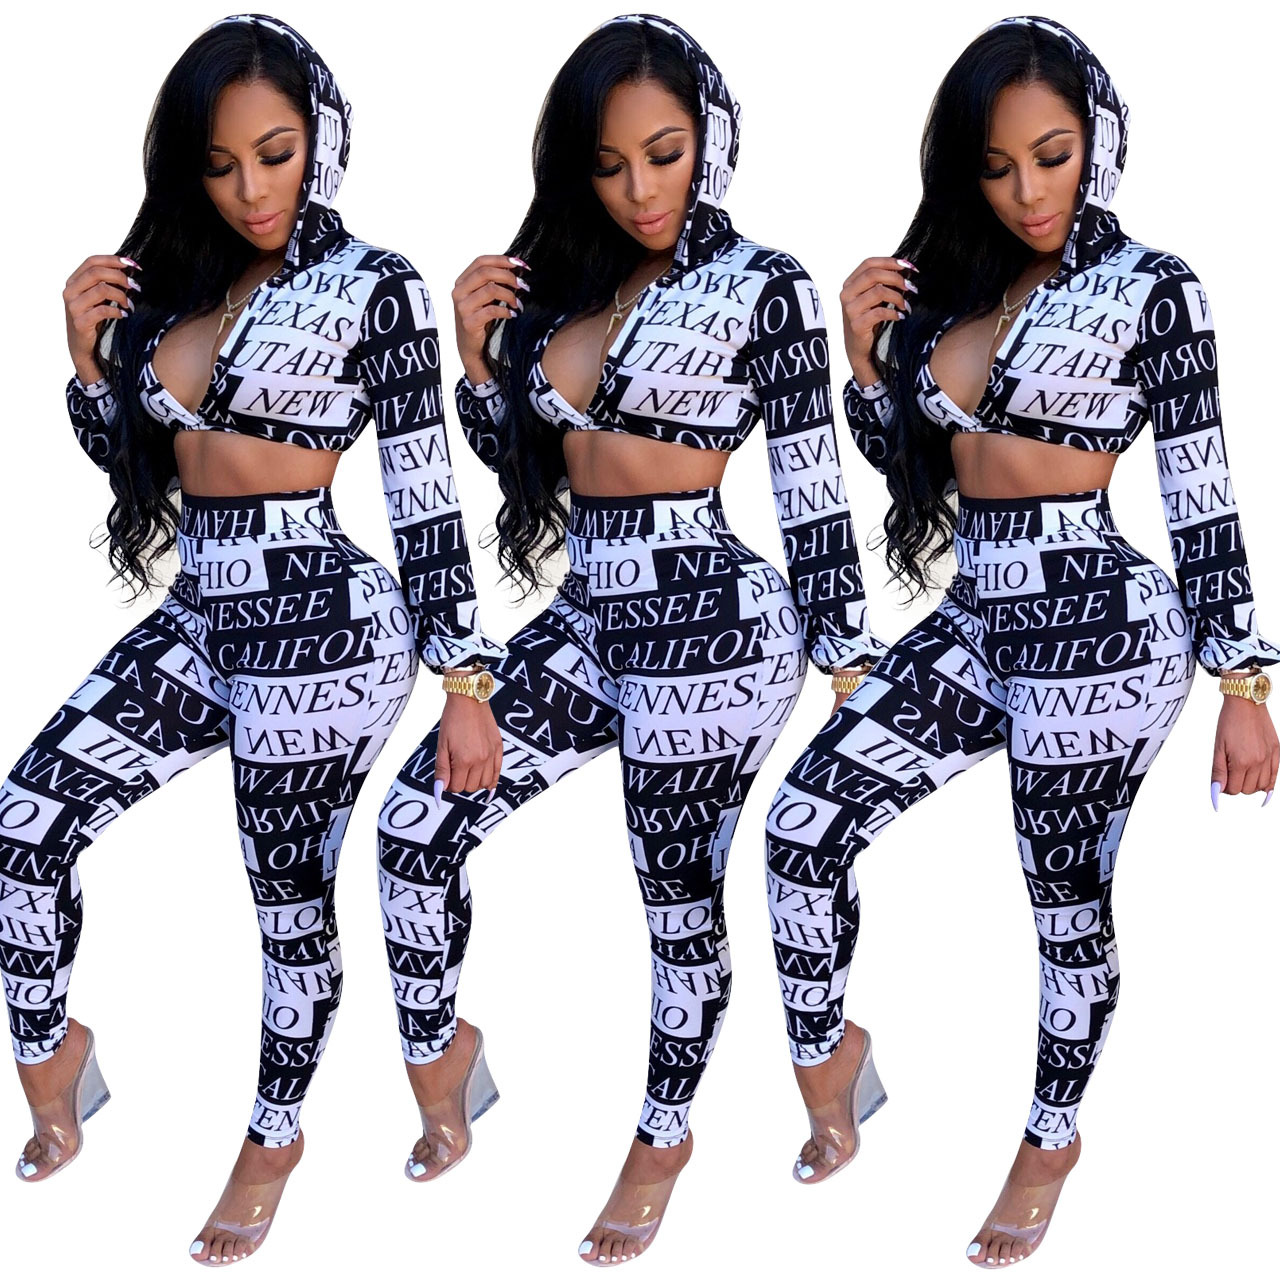 5eb4bdf99b5 Details about Women s Letter Print Party Club Set Sexy Deep V-neck Hooded  Coat+Skinny Pants